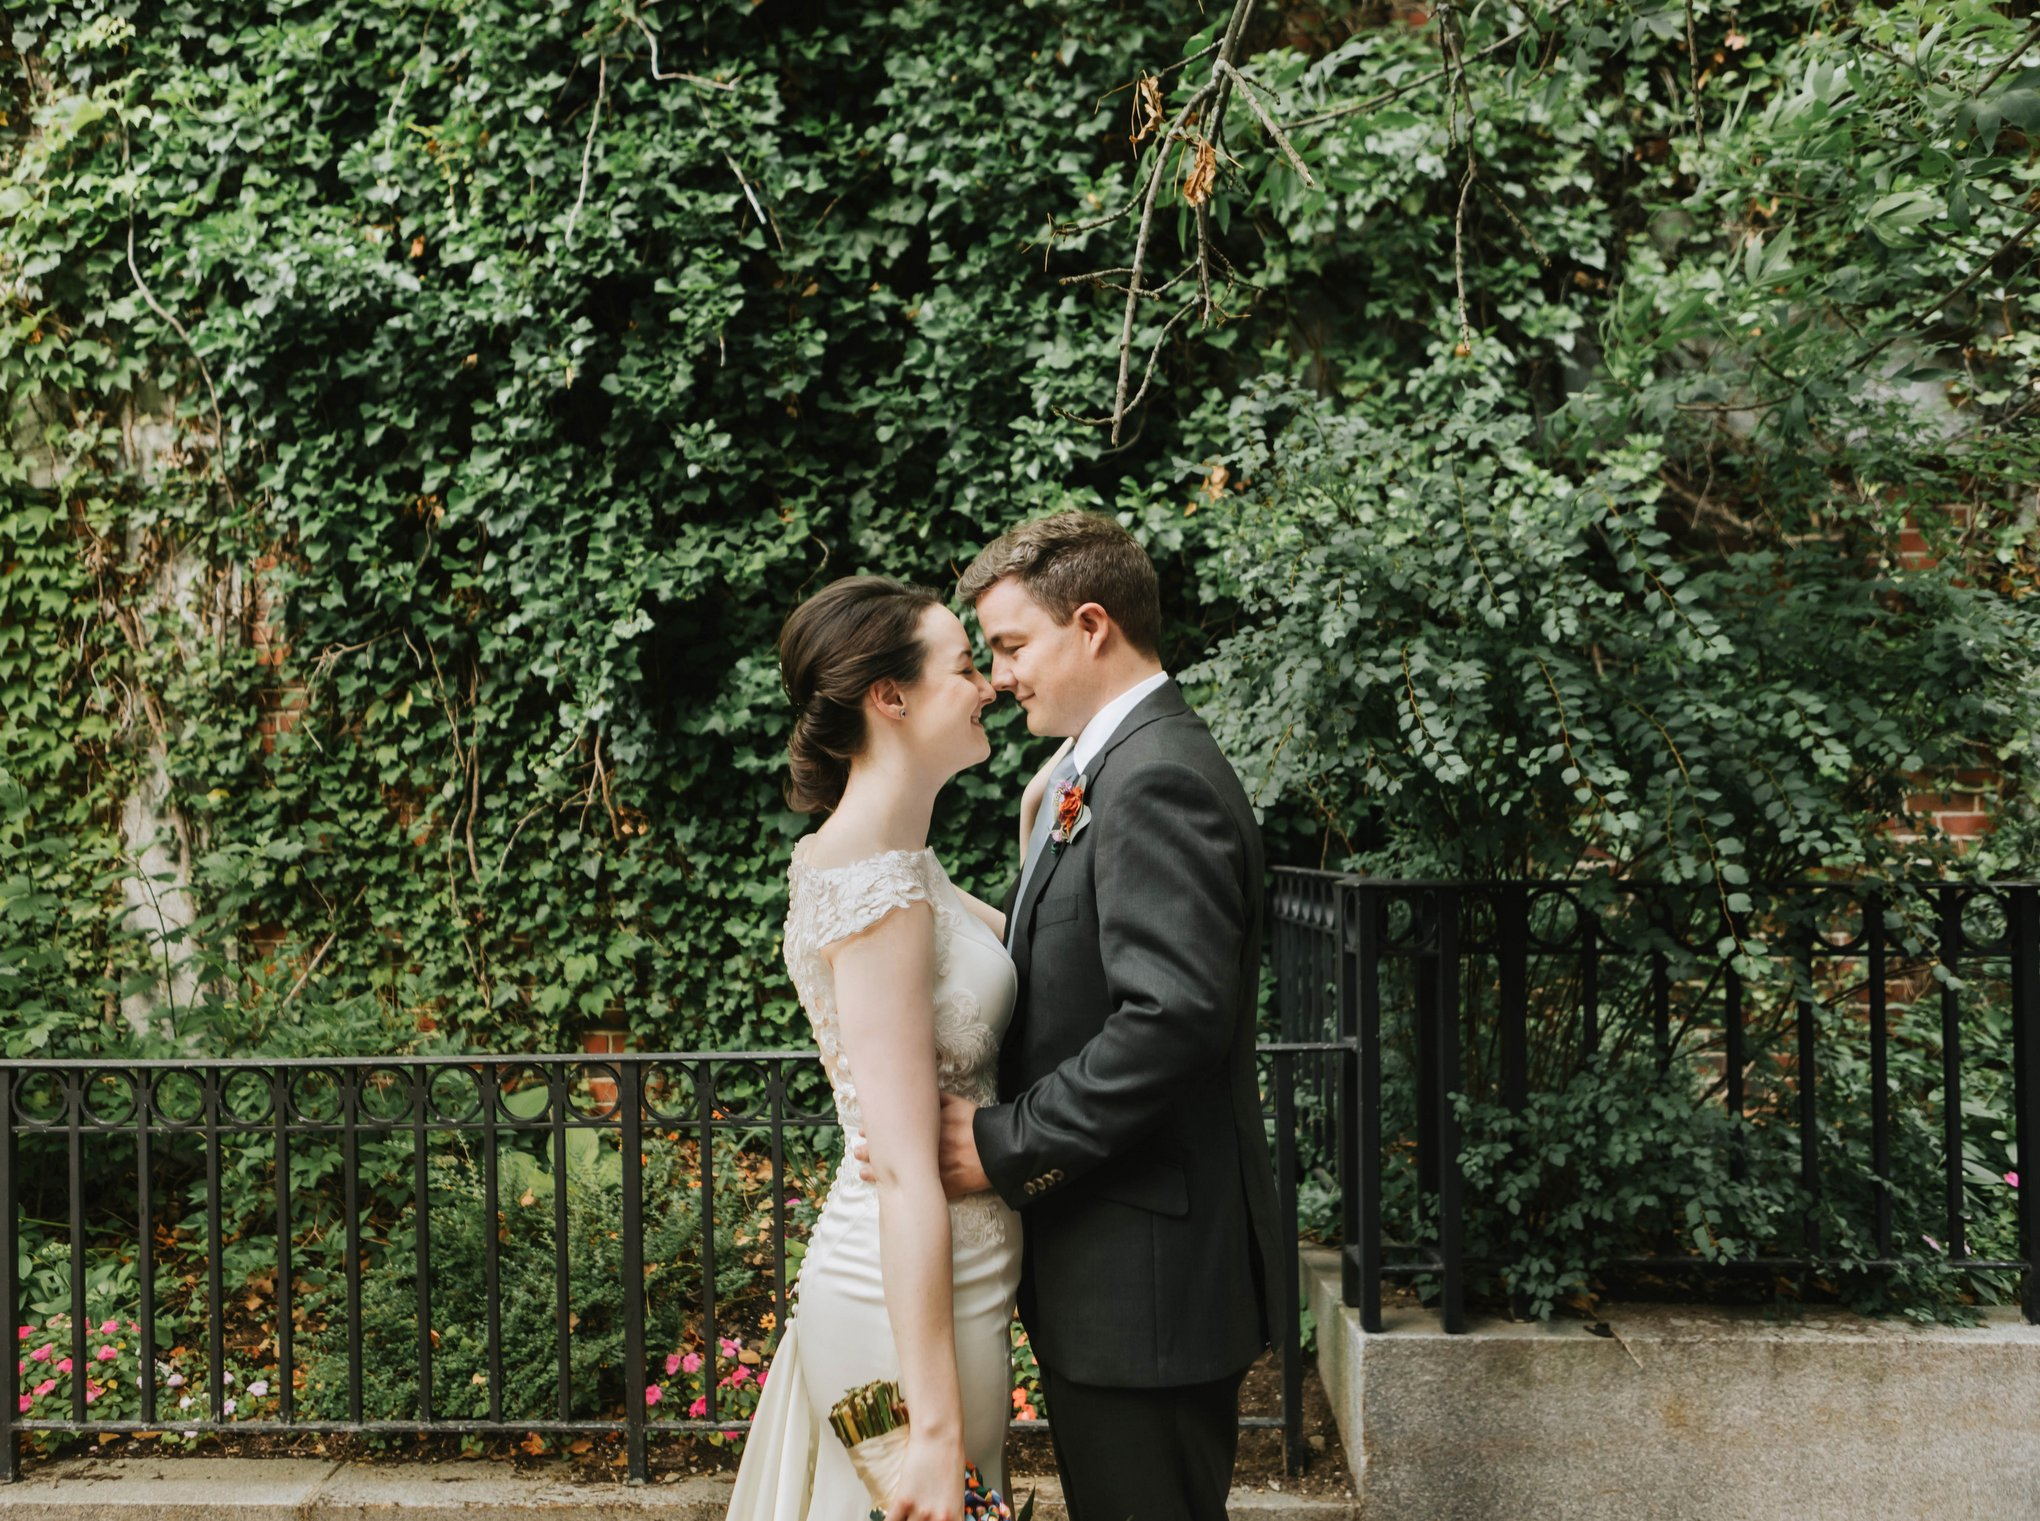 Boston-Public-Garden-Irish-Wedding-18.JPG